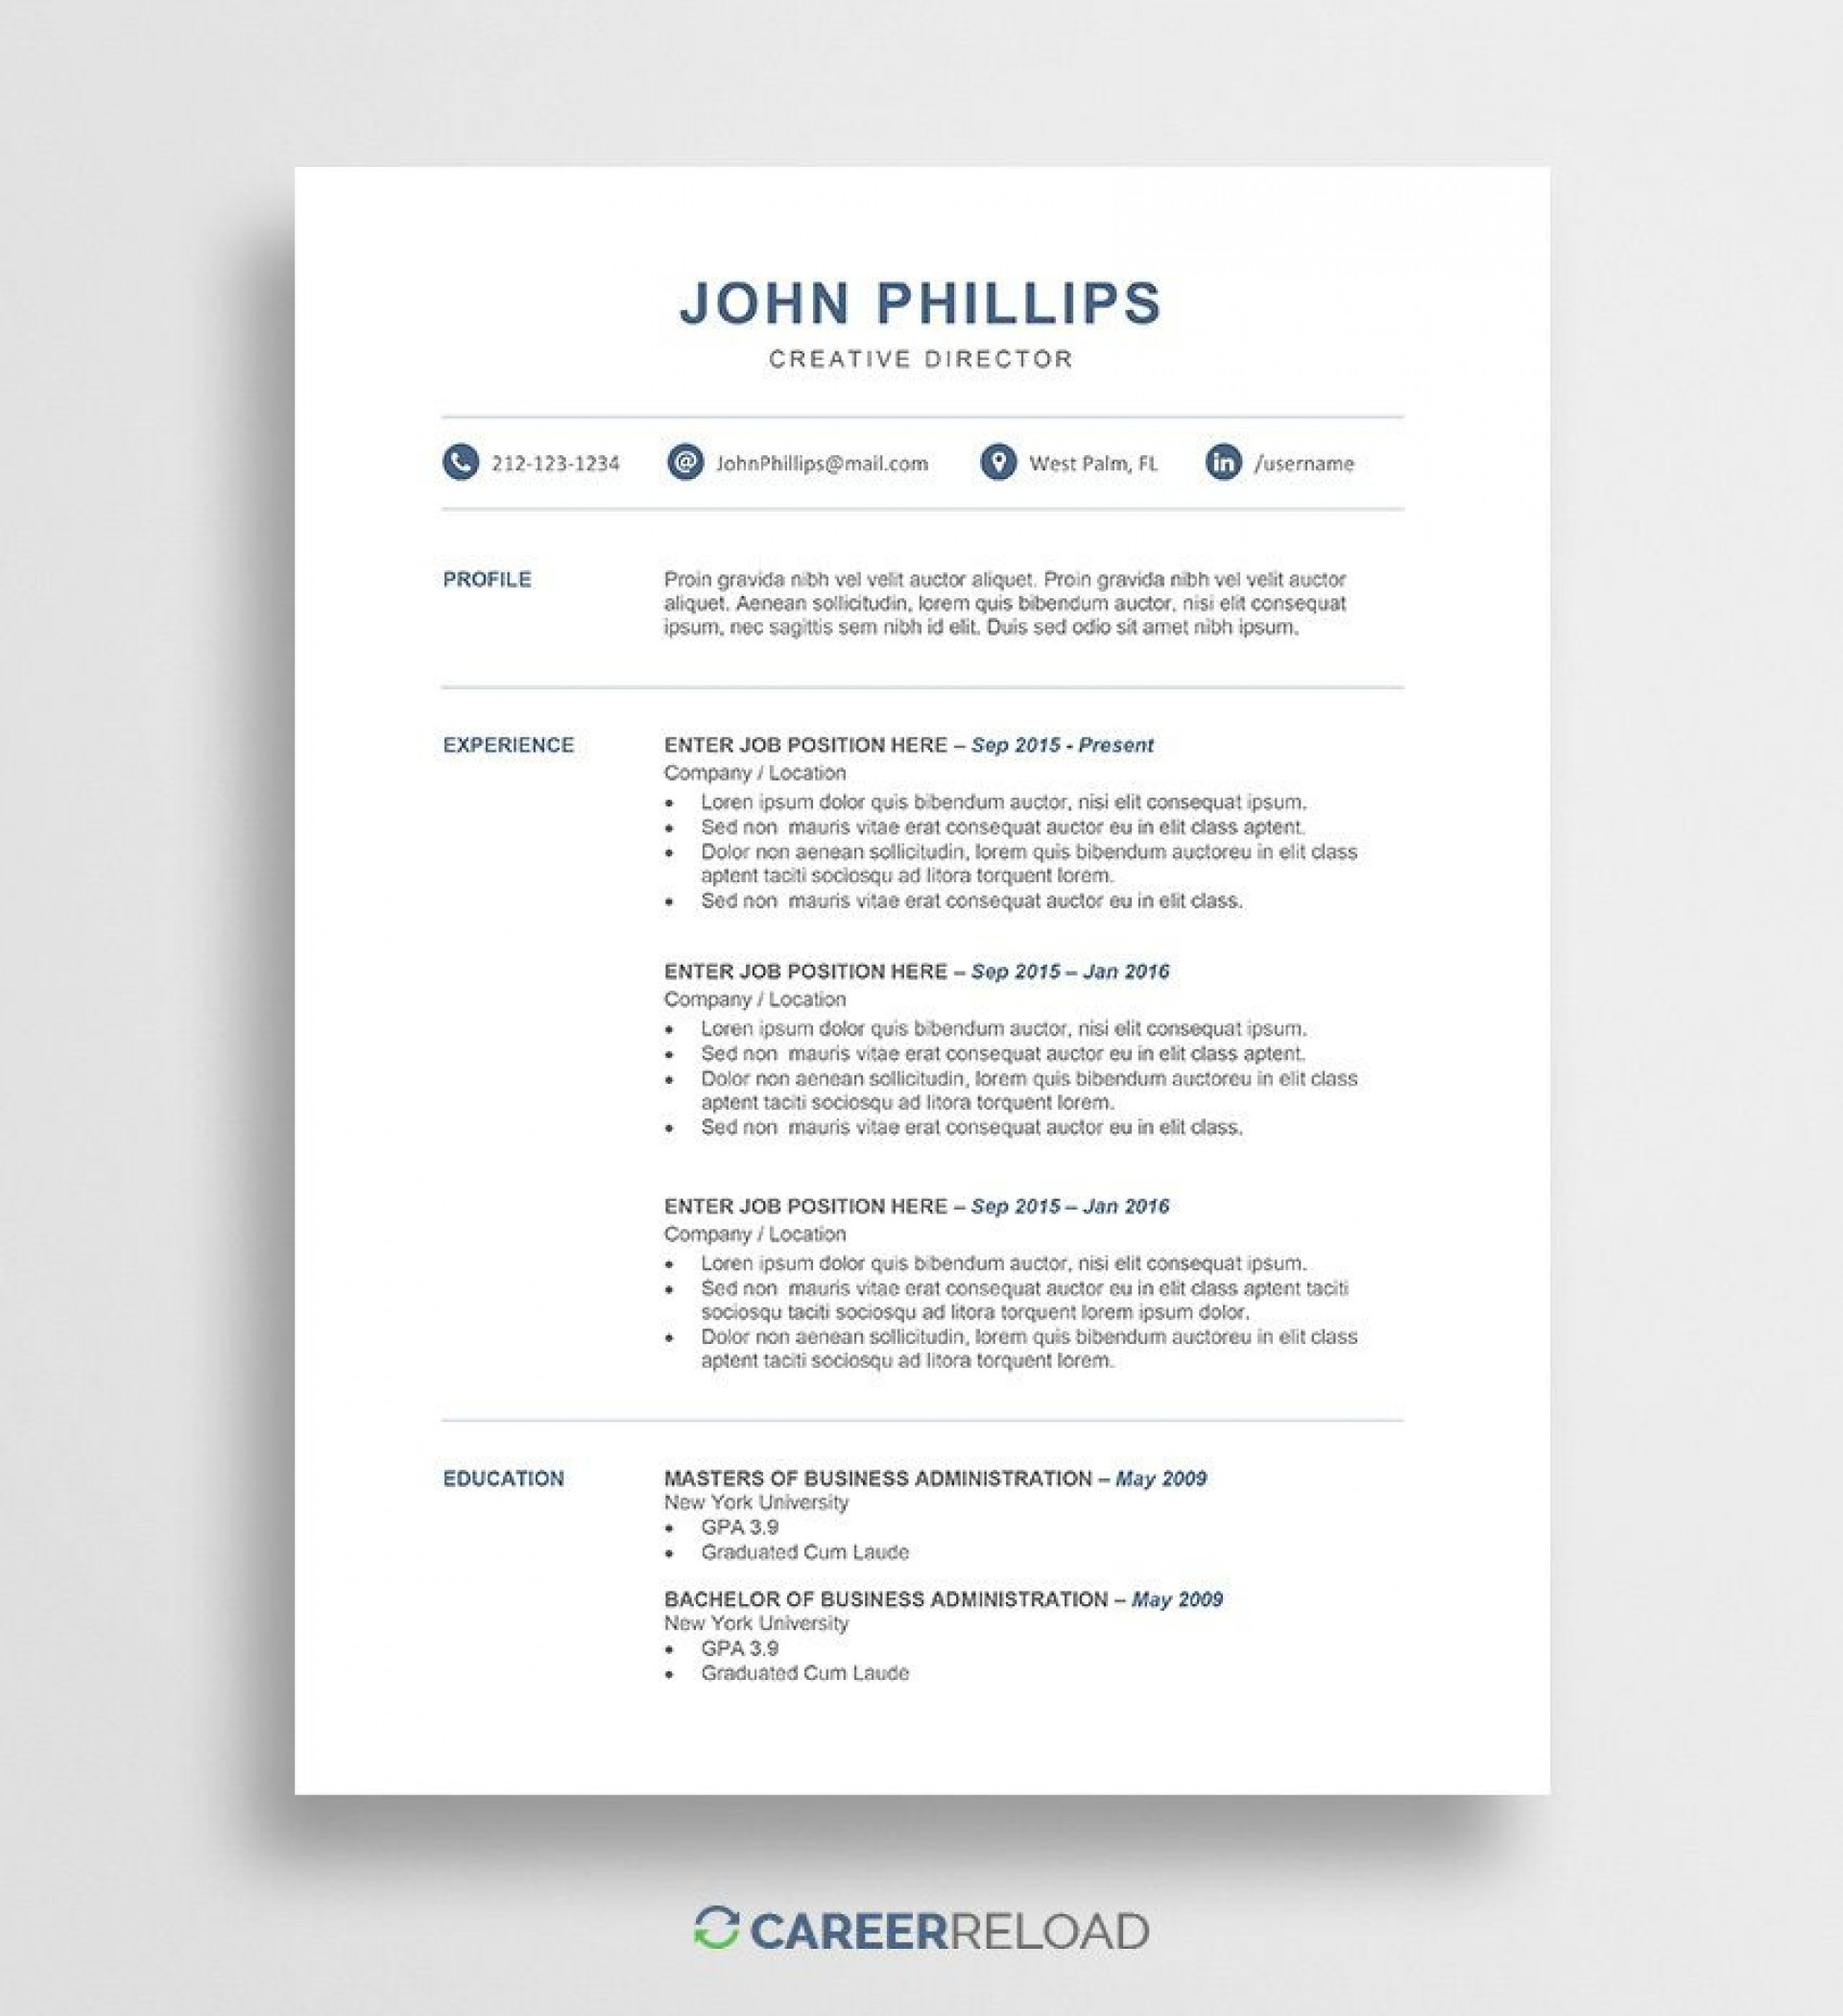 008 Remarkable Free M Resume Template Highest Clarity  Templates 50 Microsoft Word For Download 20191920